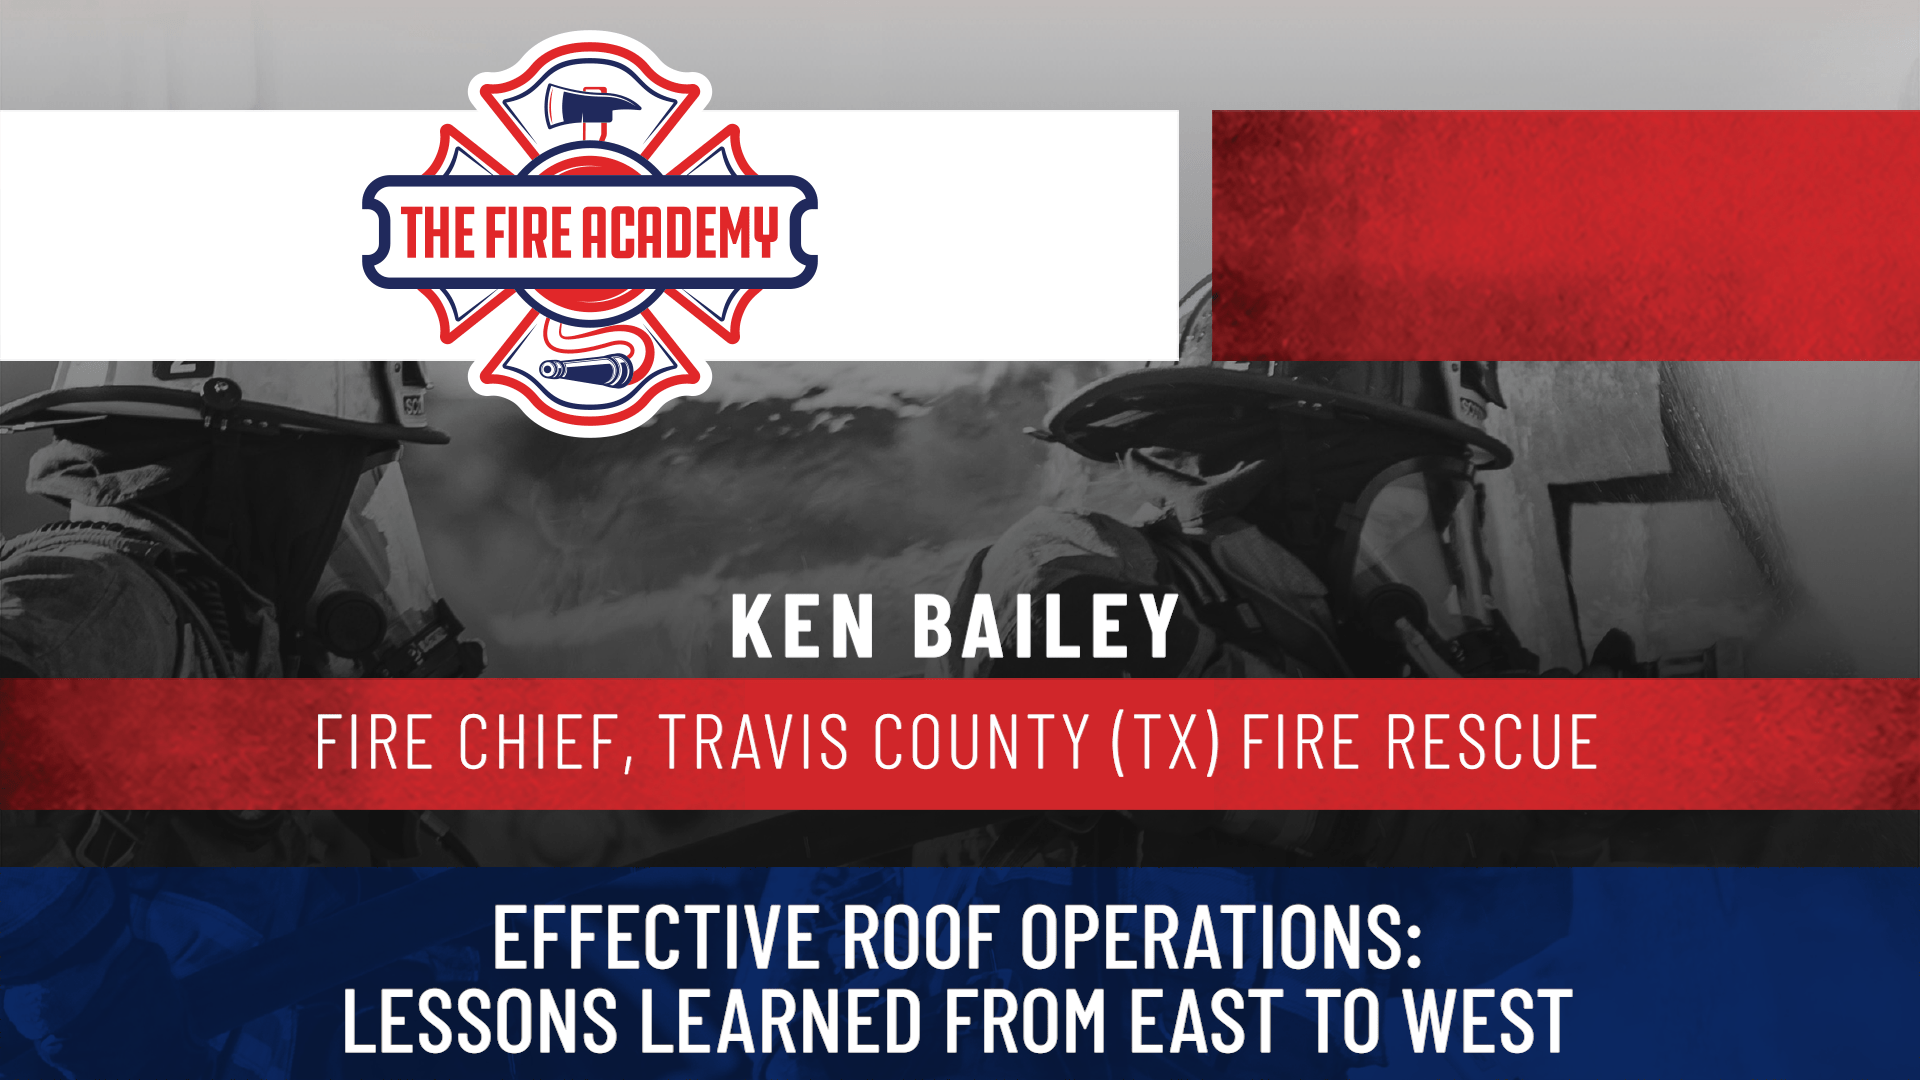 Effective Roof Operations: Lessons Learned from East to West